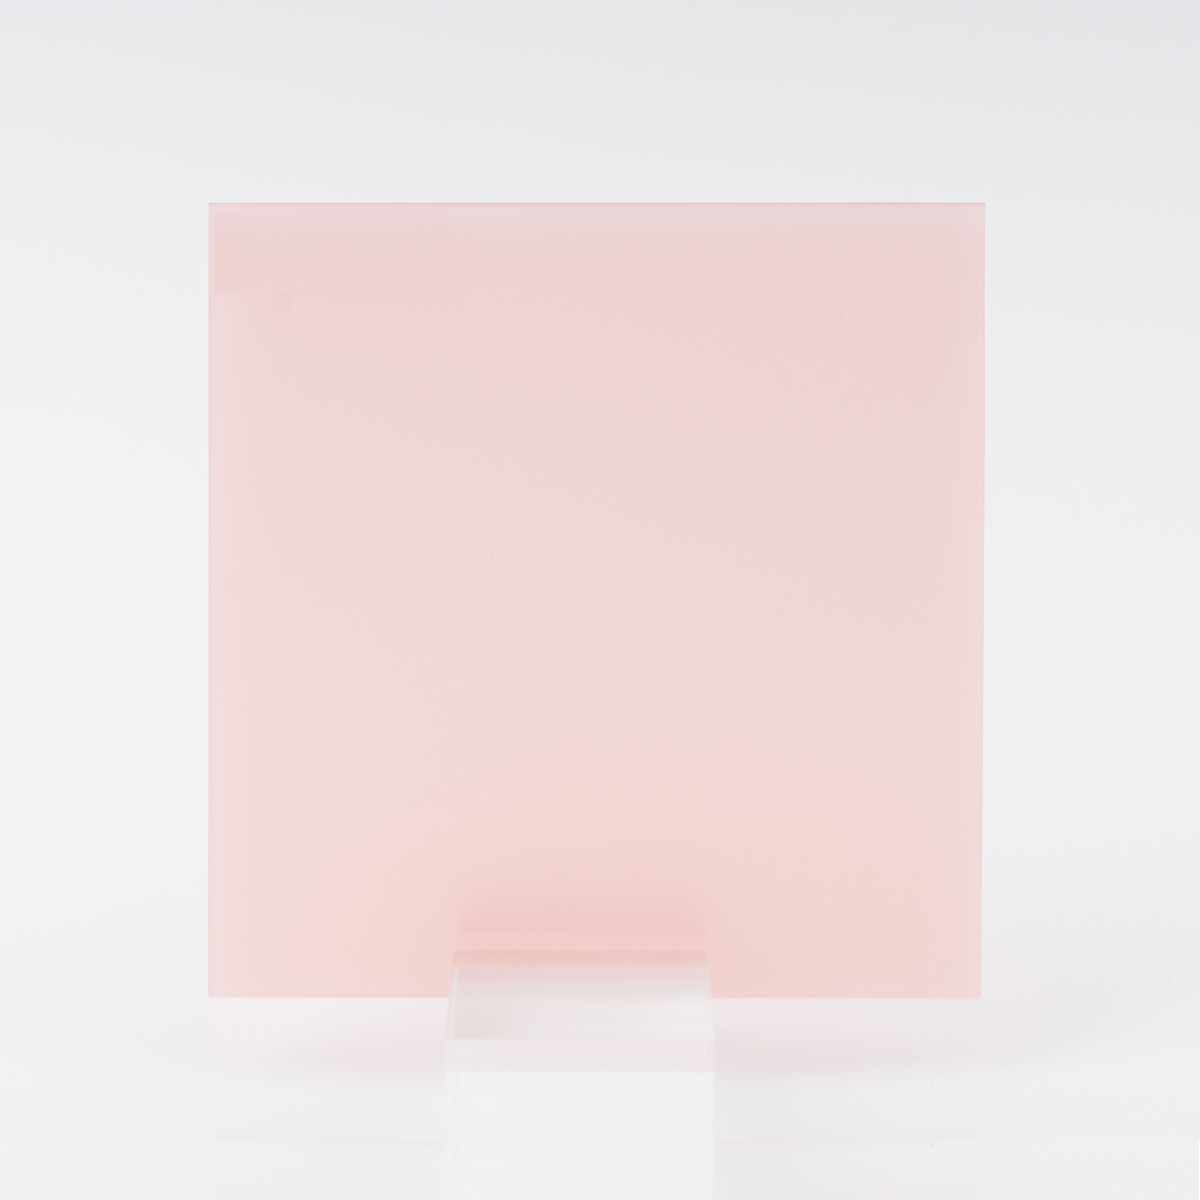 Blush Pink 4t46 Frost Perspex Acrylic Sheet 54 Light